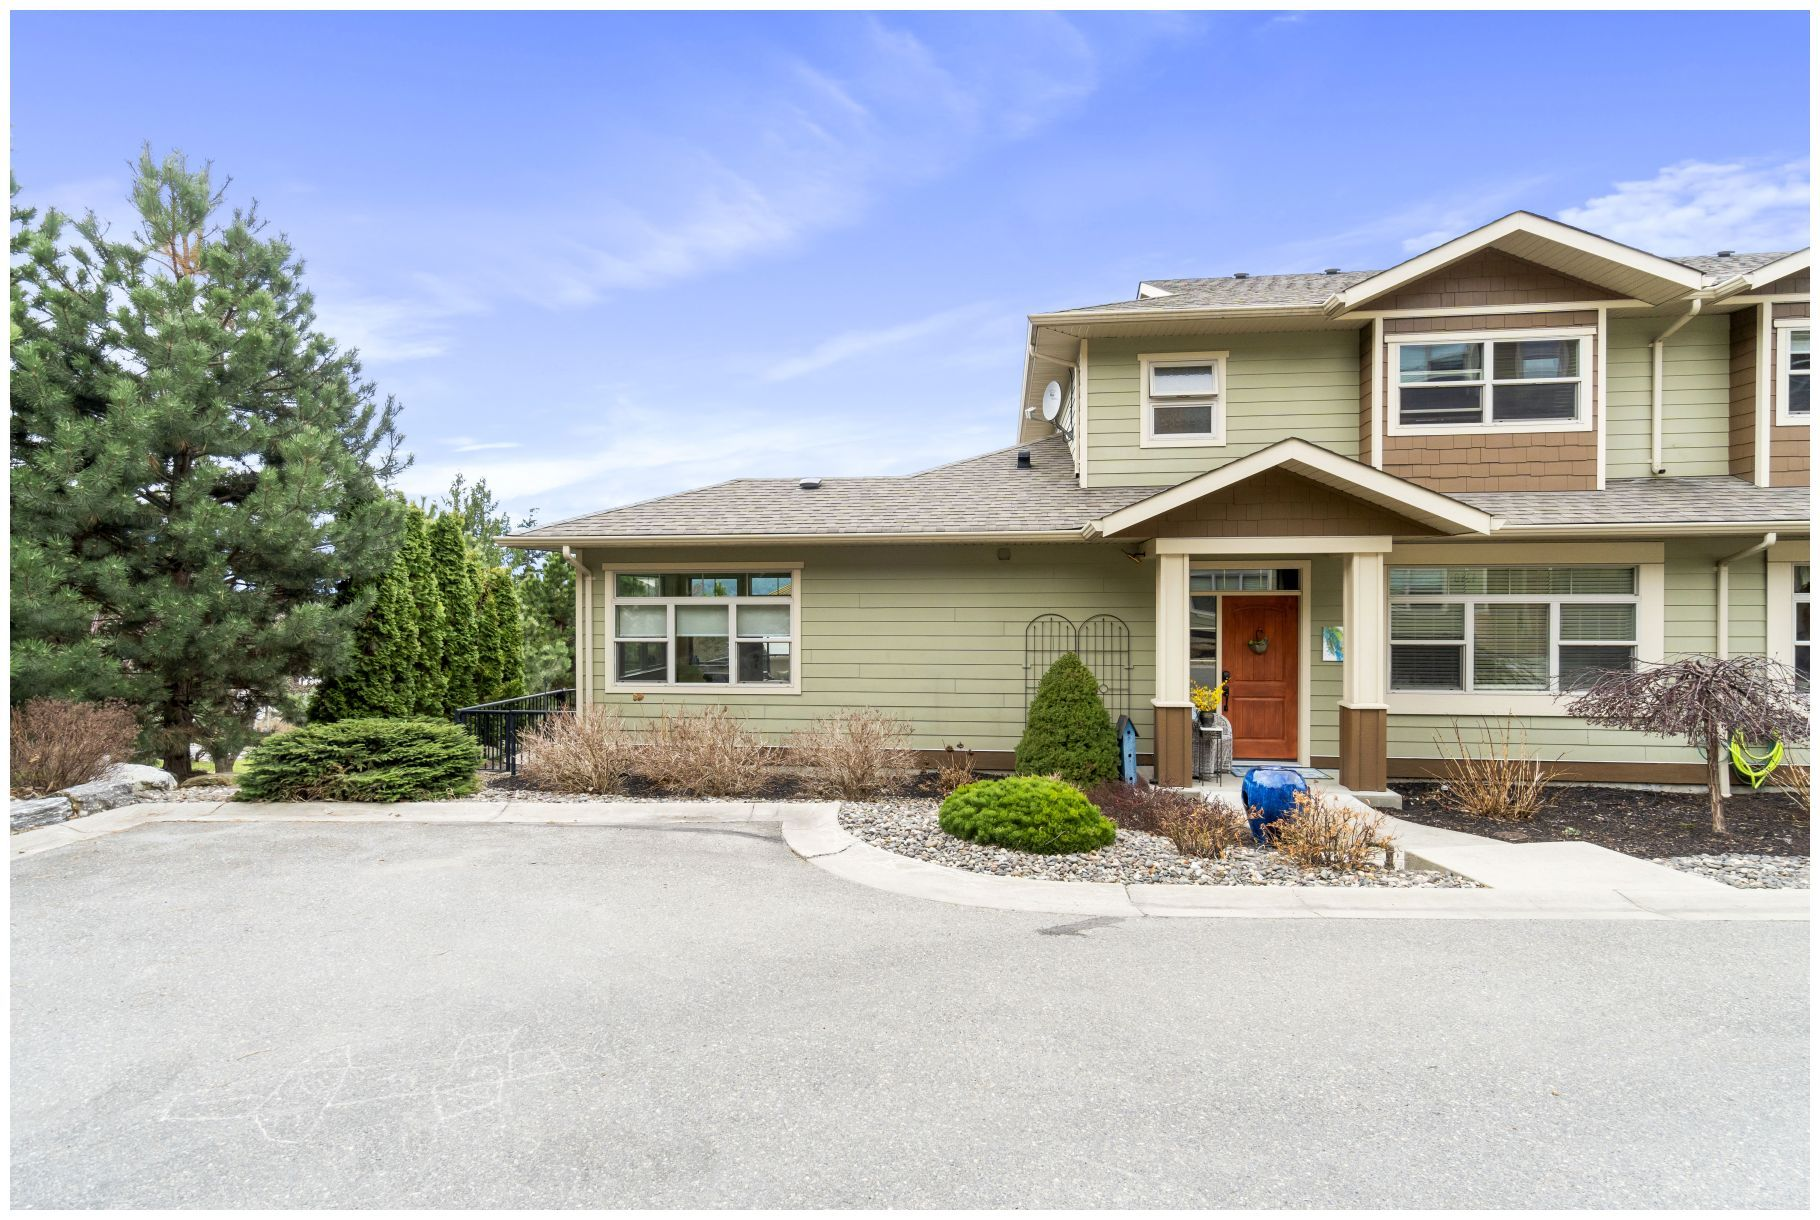 Main Photo: 4310 Northeast 14 Street in Salmon Arm: Raven Sub-Div House for sale : MLS®# 10229051